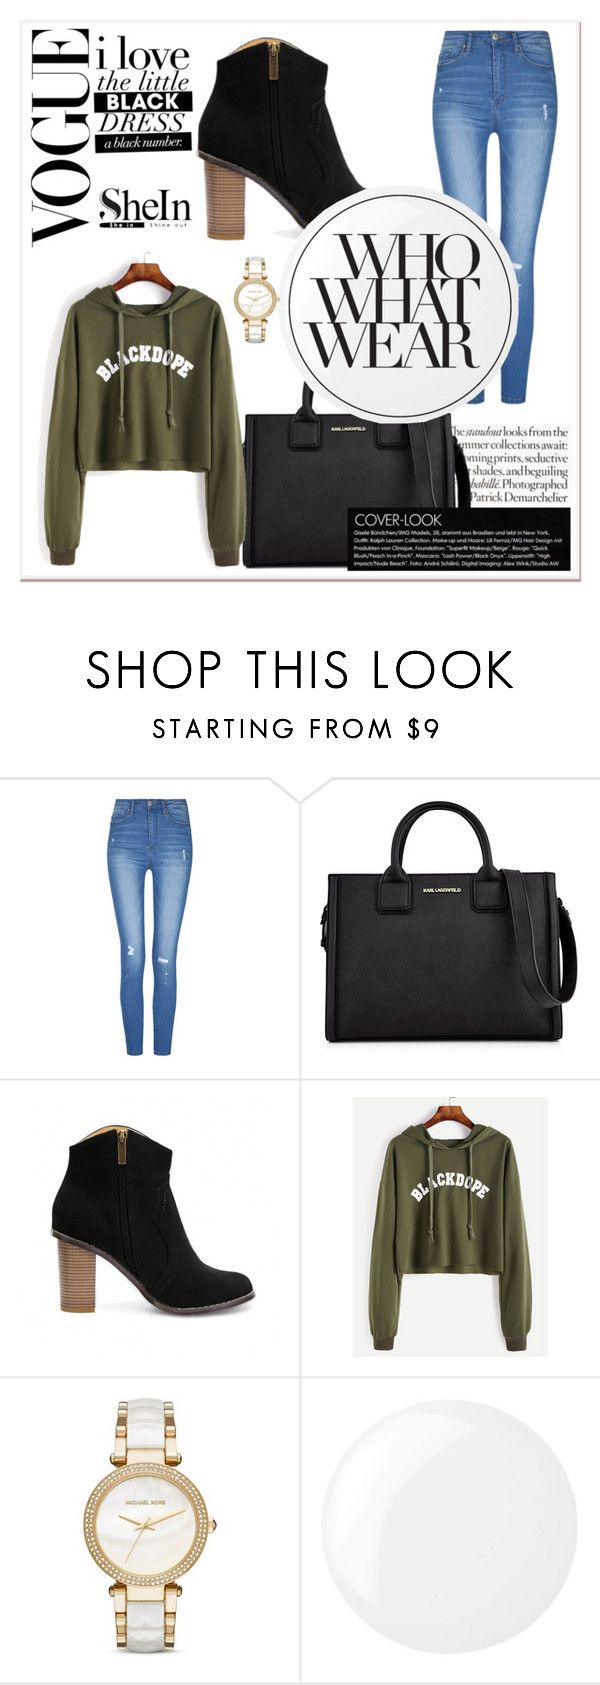 """""""shein # 6"""" by abbybo ❤ liked on Polyvore featuring Karl Lagerfeld, Michael Kors, Essie and Who What Wear"""